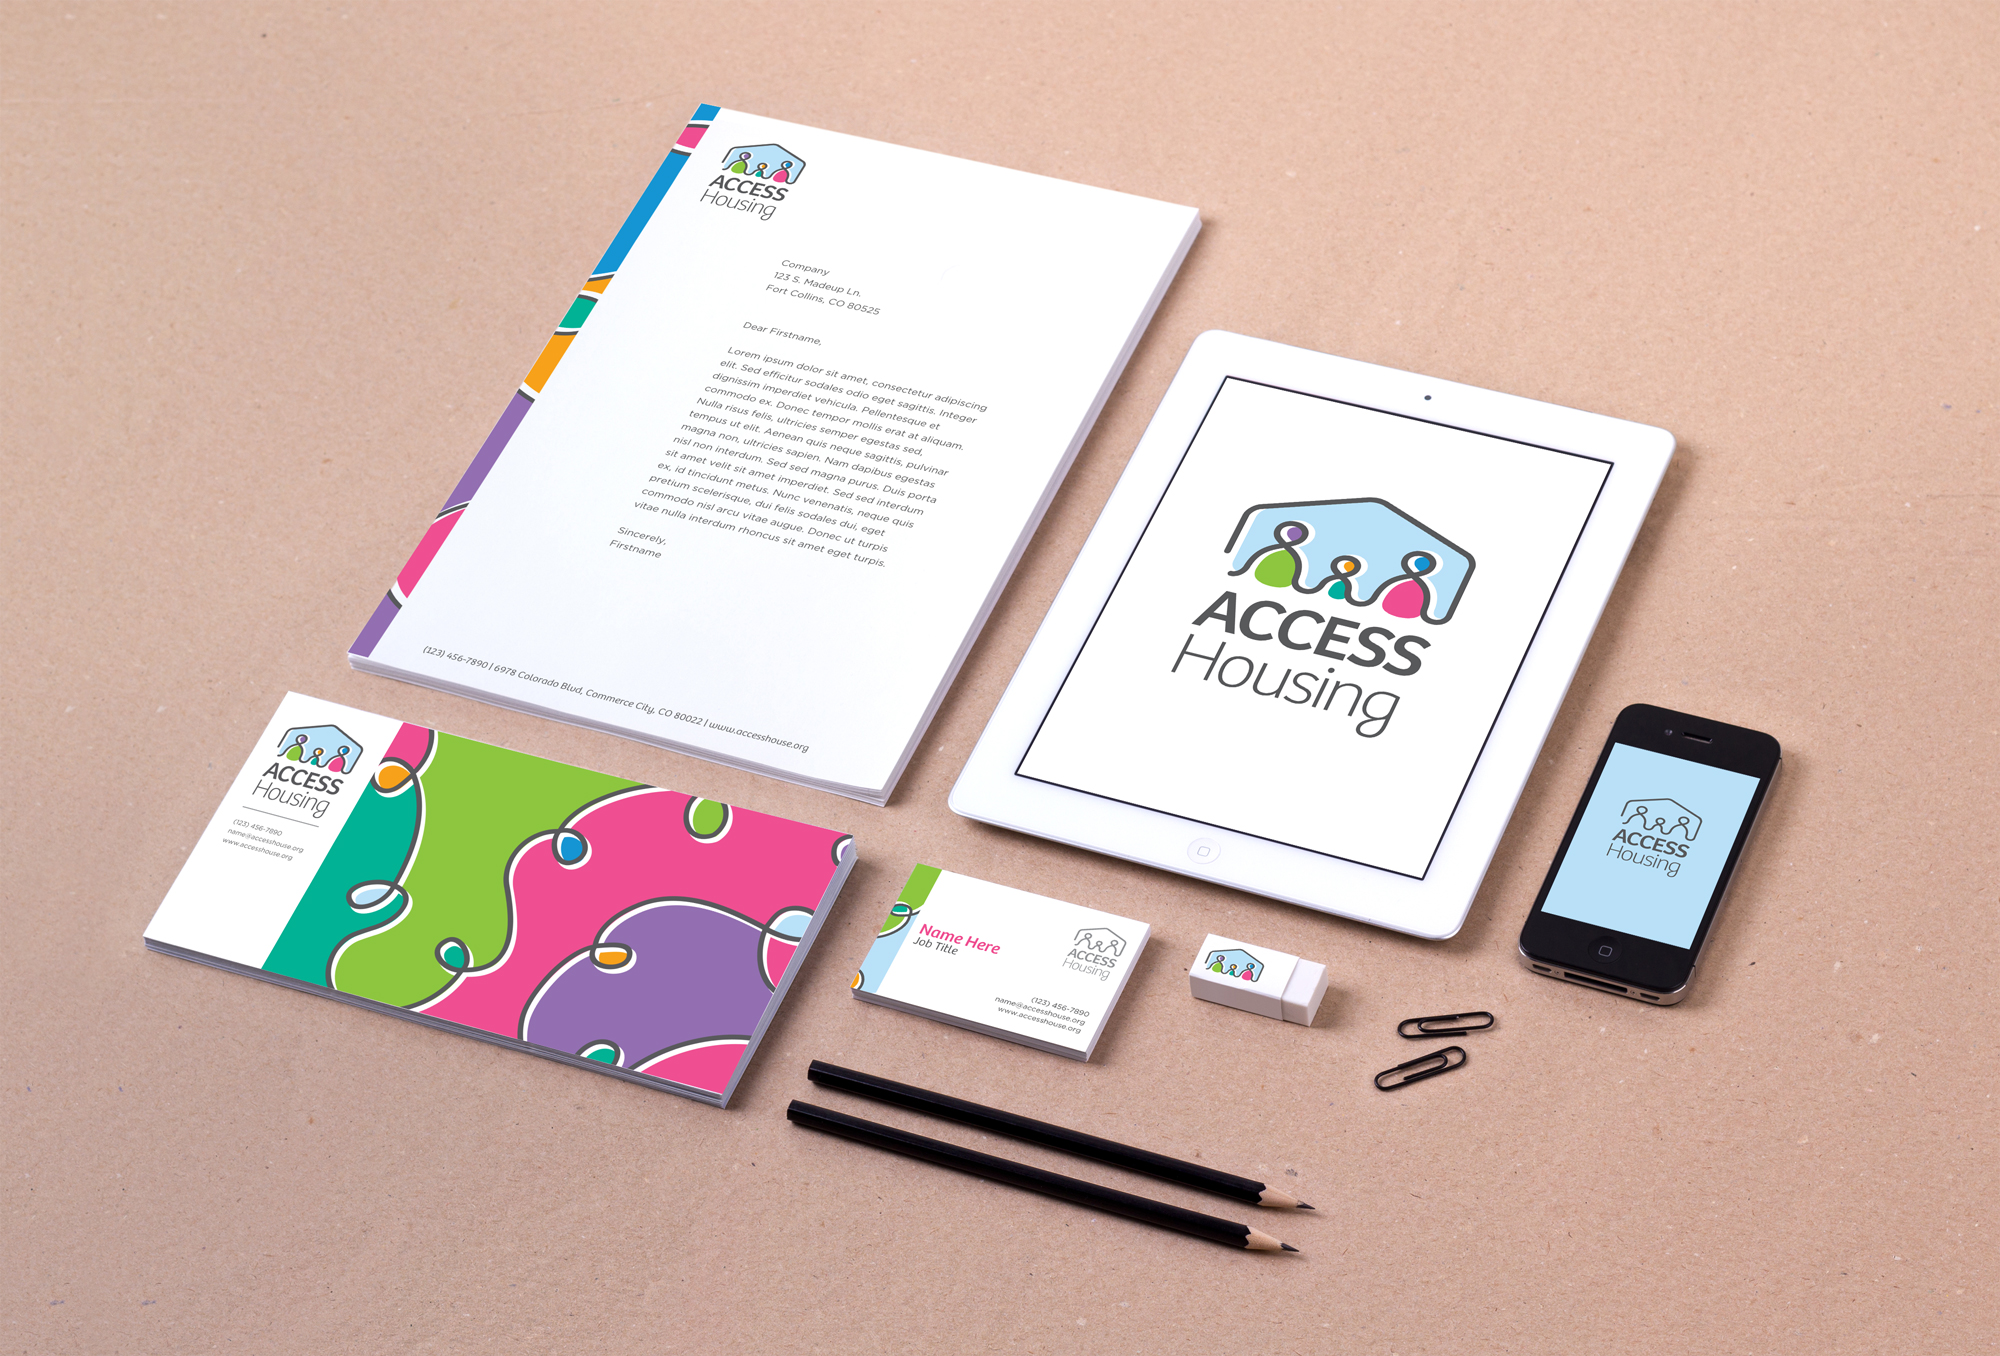 Letterhead, Business Cards, iPhone and iPad renderings, and various other Access Housing brand materials.